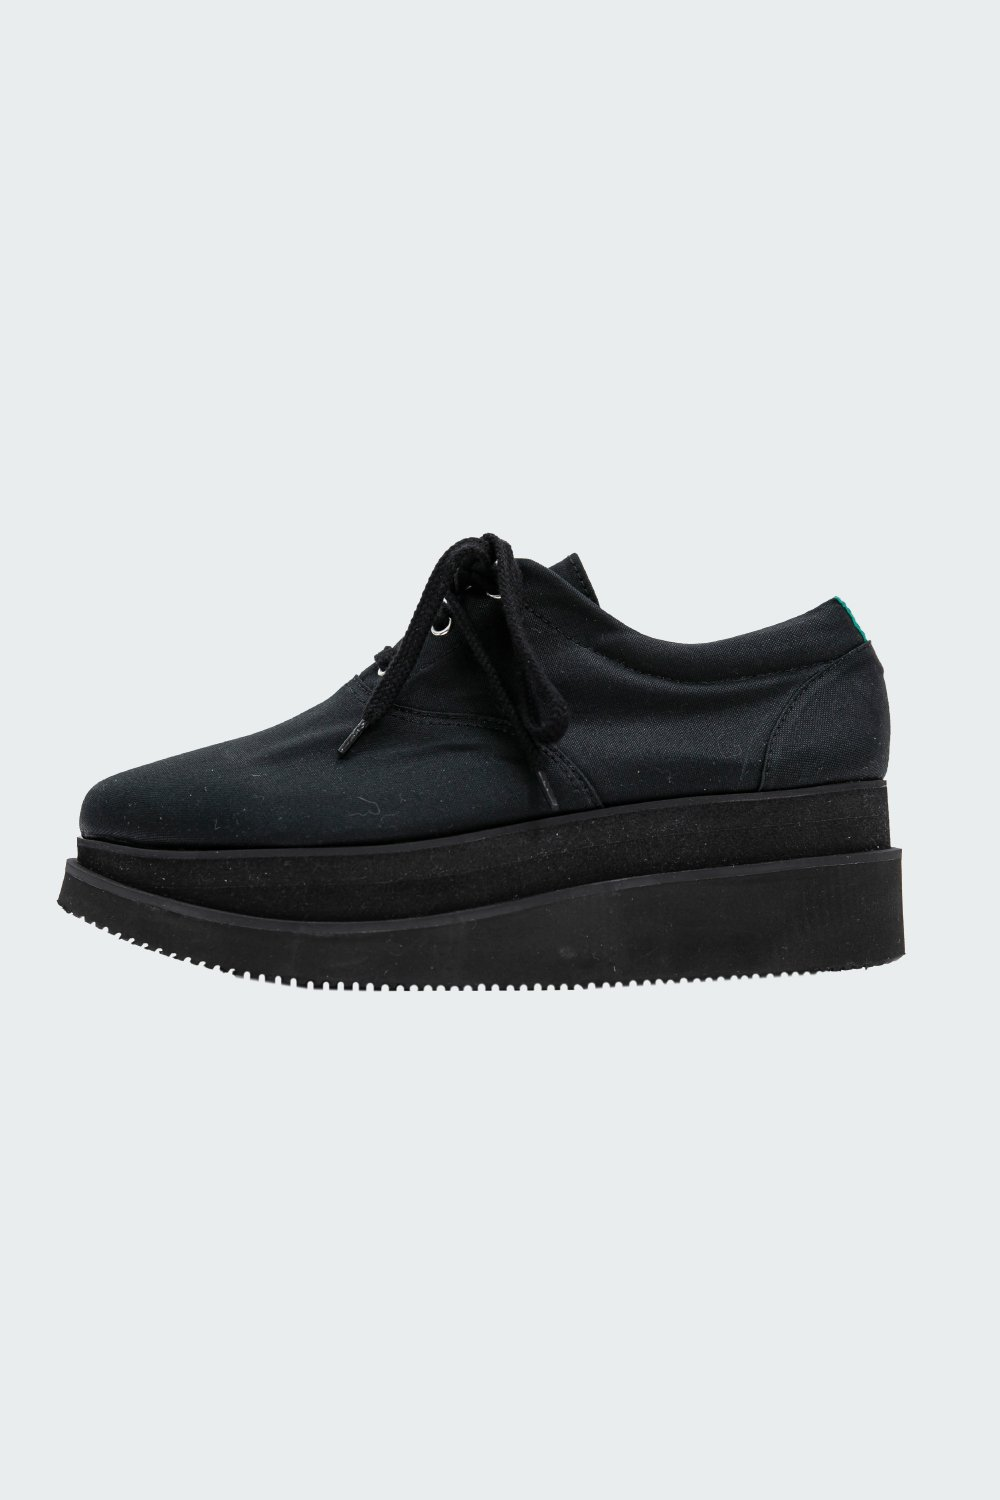 <img class='new_mark_img1' src='https://img.shop-pro.jp/img/new/icons56.gif' style='border:none;display:inline;margin:0px;padding:0px;width:auto;' />NEW WEDGE SOLE SNEACKERS BLACK